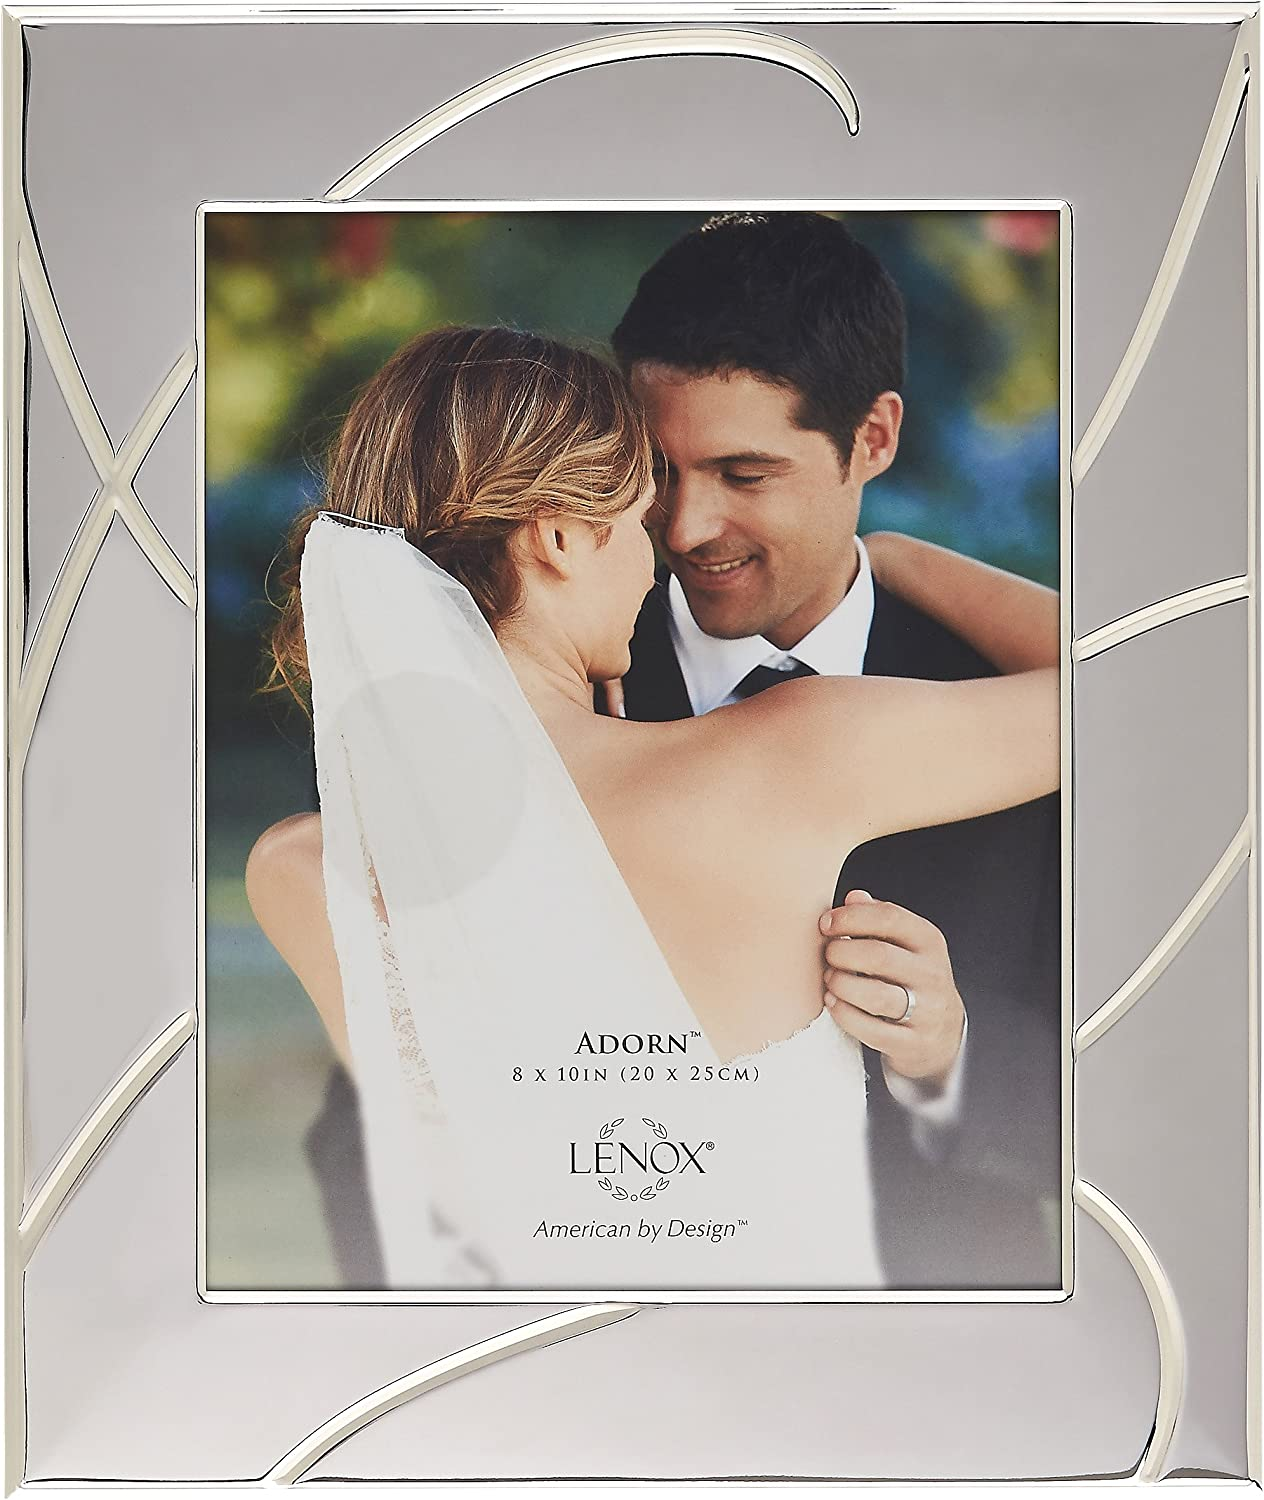 Lenox Bridal Adorn New item Frame 10-Inch by excellence 8